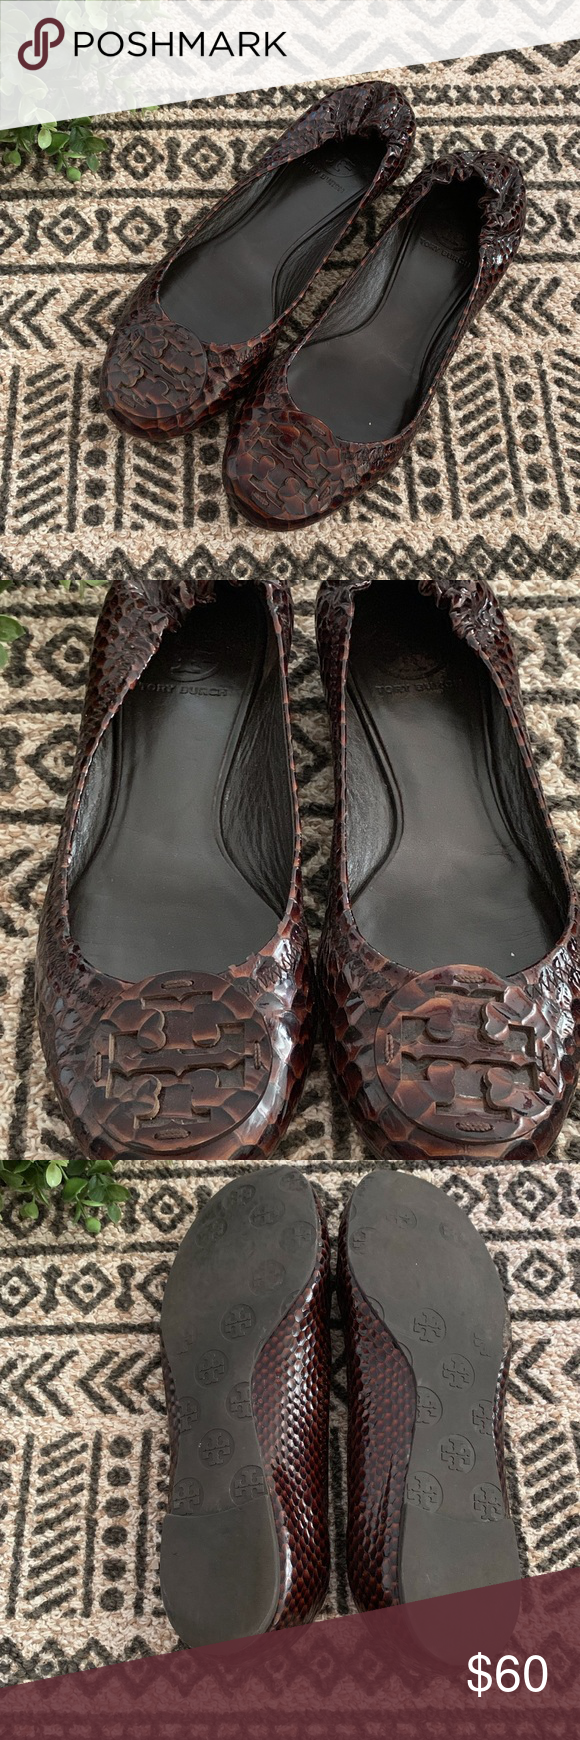 31e86819f263 Tory Burch Reva Snakeskin Brown Flats Size 8 Tory Burch Reva Snakeskin  Brown Flats. Condition